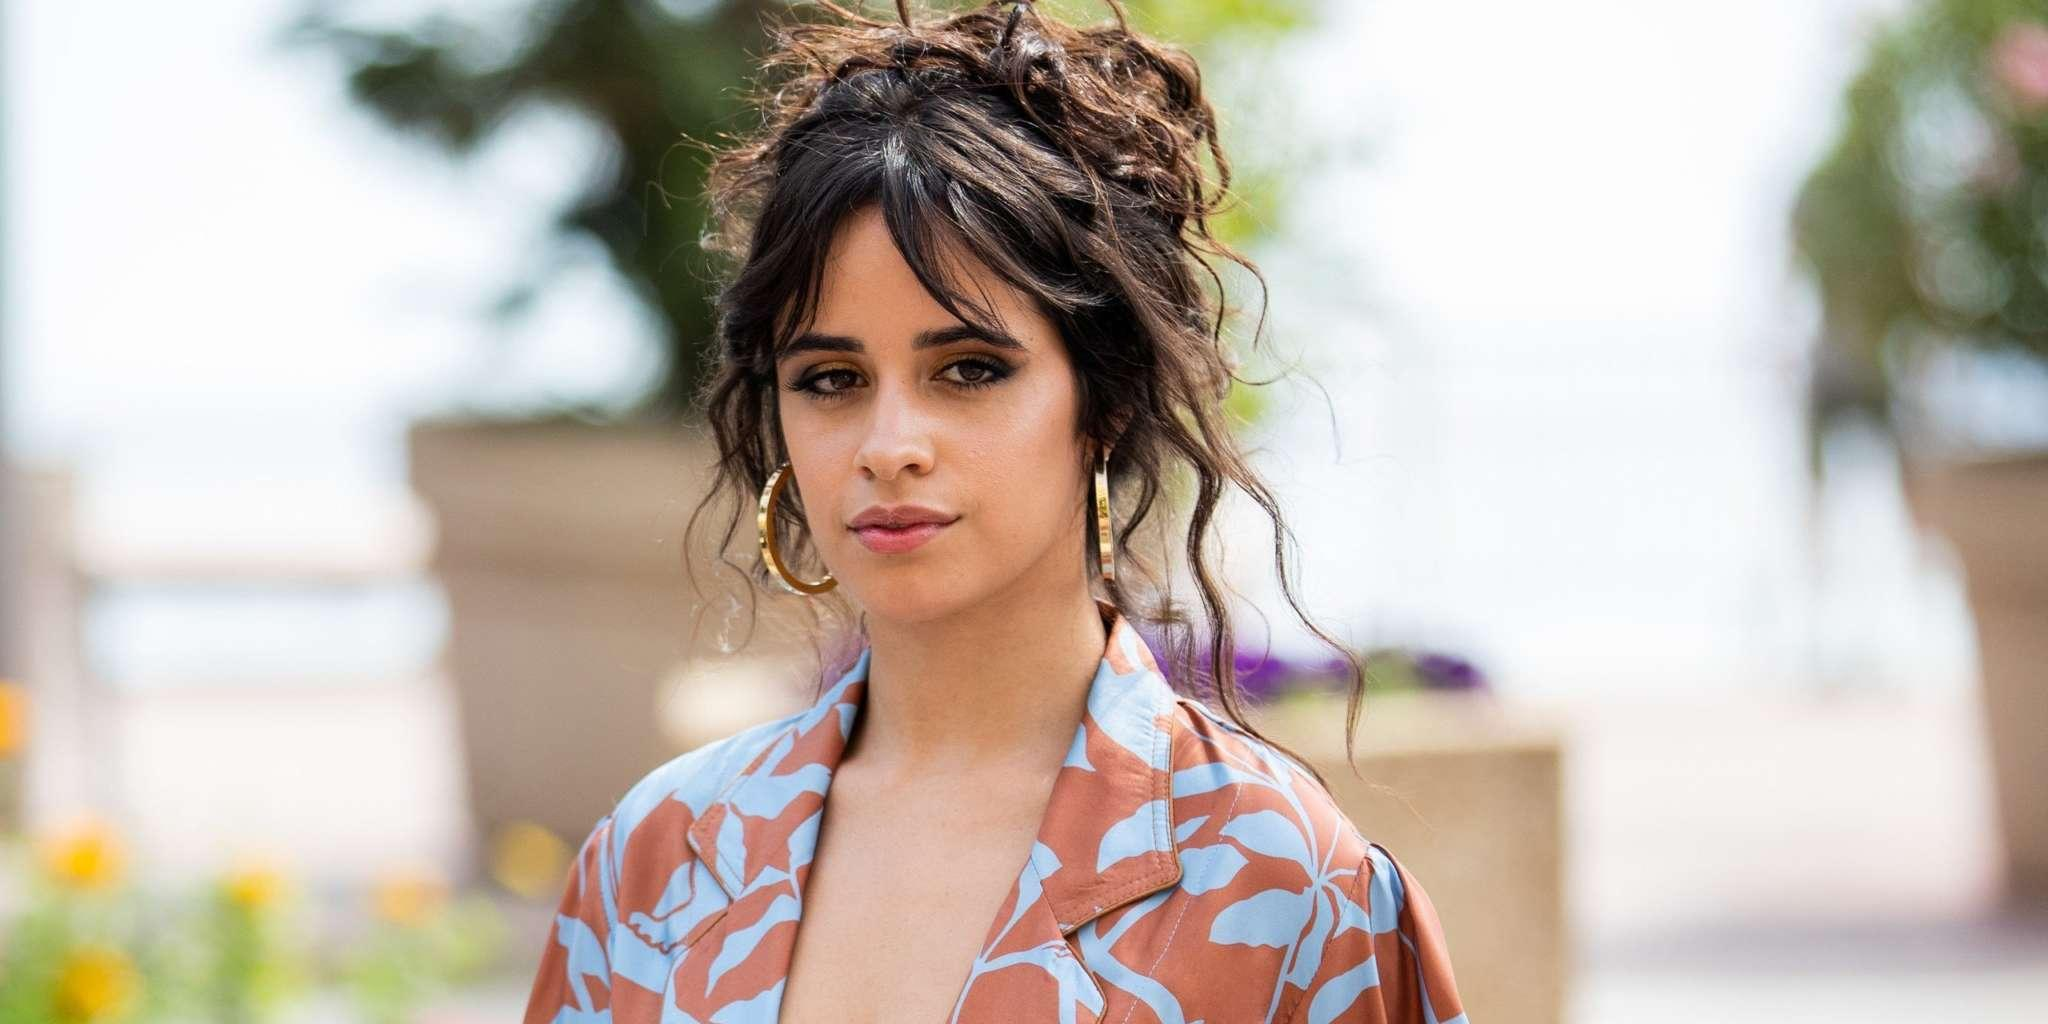 Camila Cabello Opens Up About Her Struggle With Anxiety And OCD For The First Time In Touching Essay